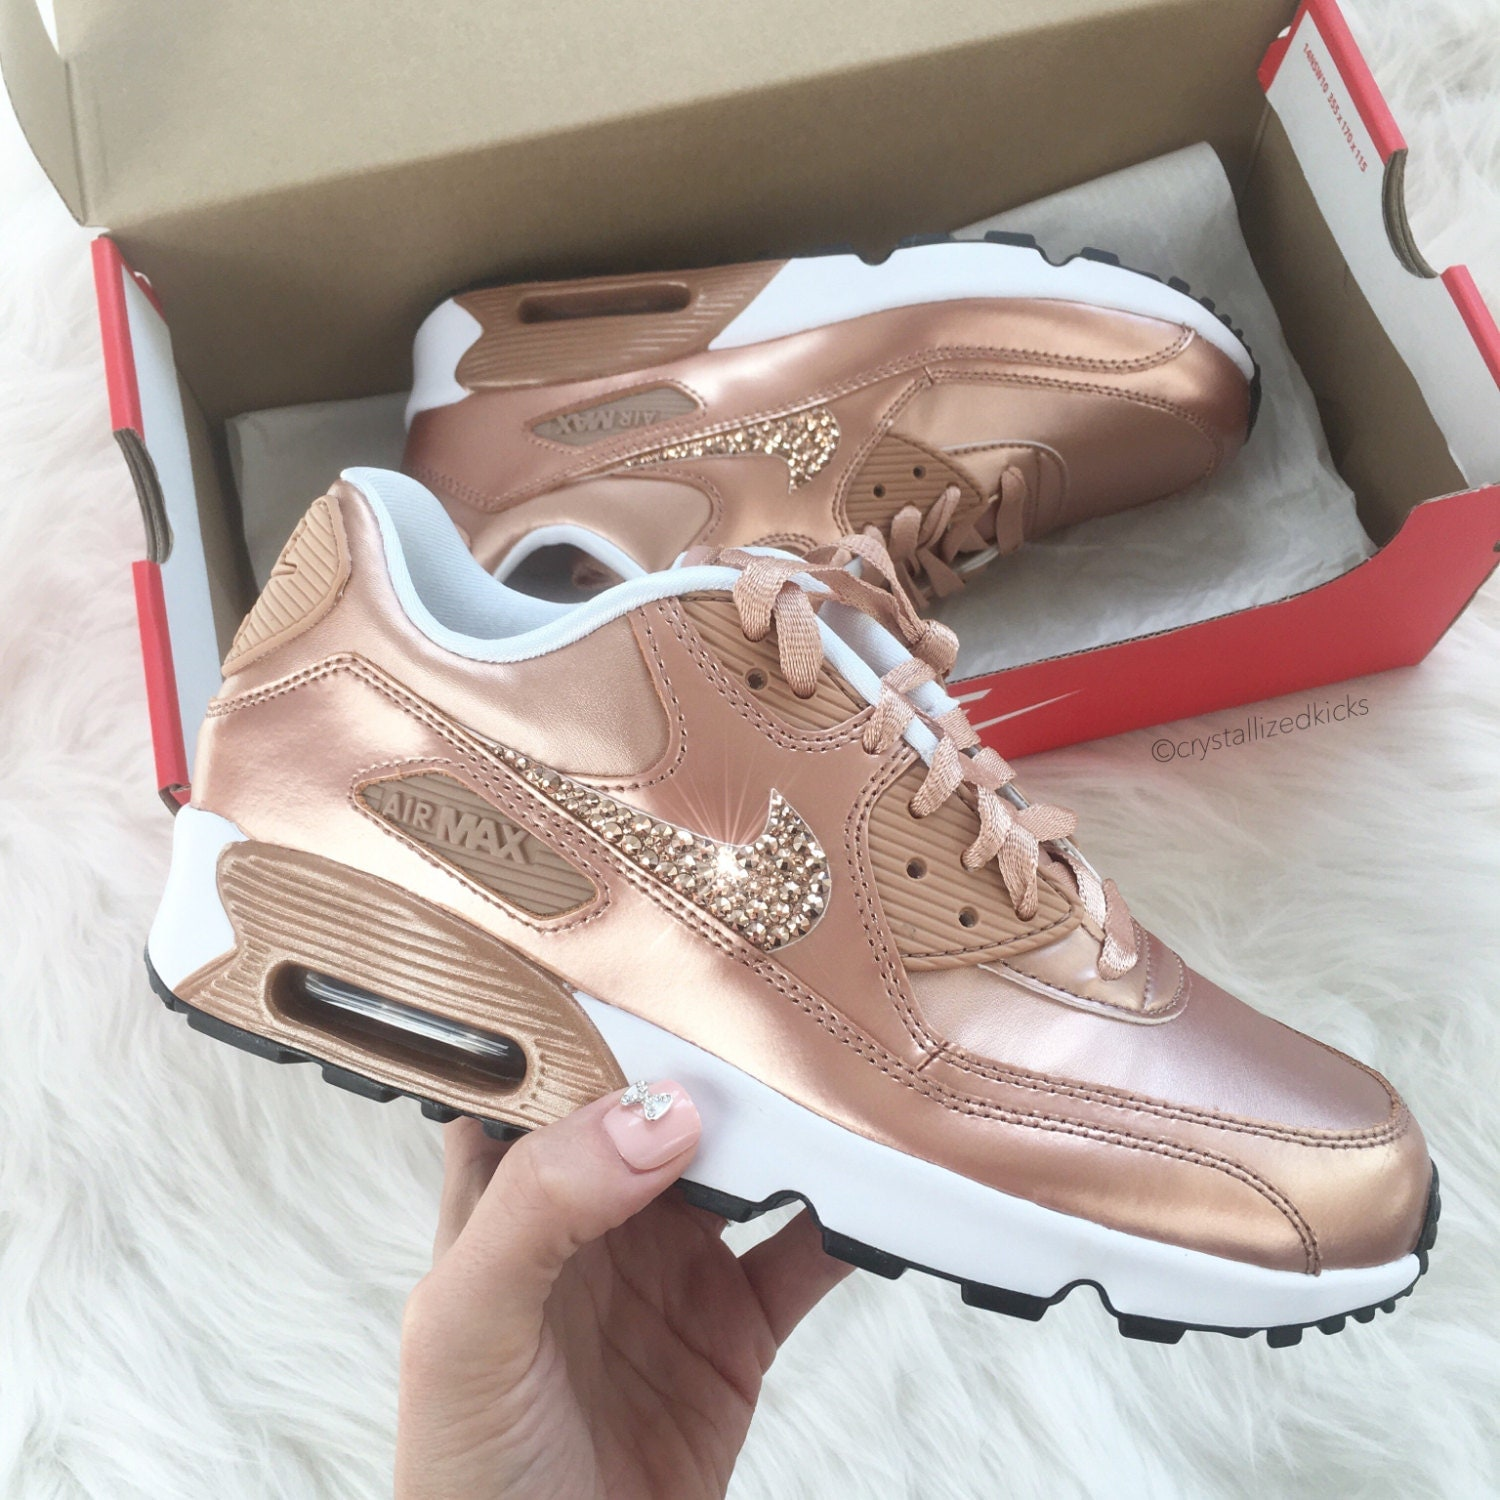 nike air max 90 rose gold sneakers made with swarovski. Black Bedroom Furniture Sets. Home Design Ideas